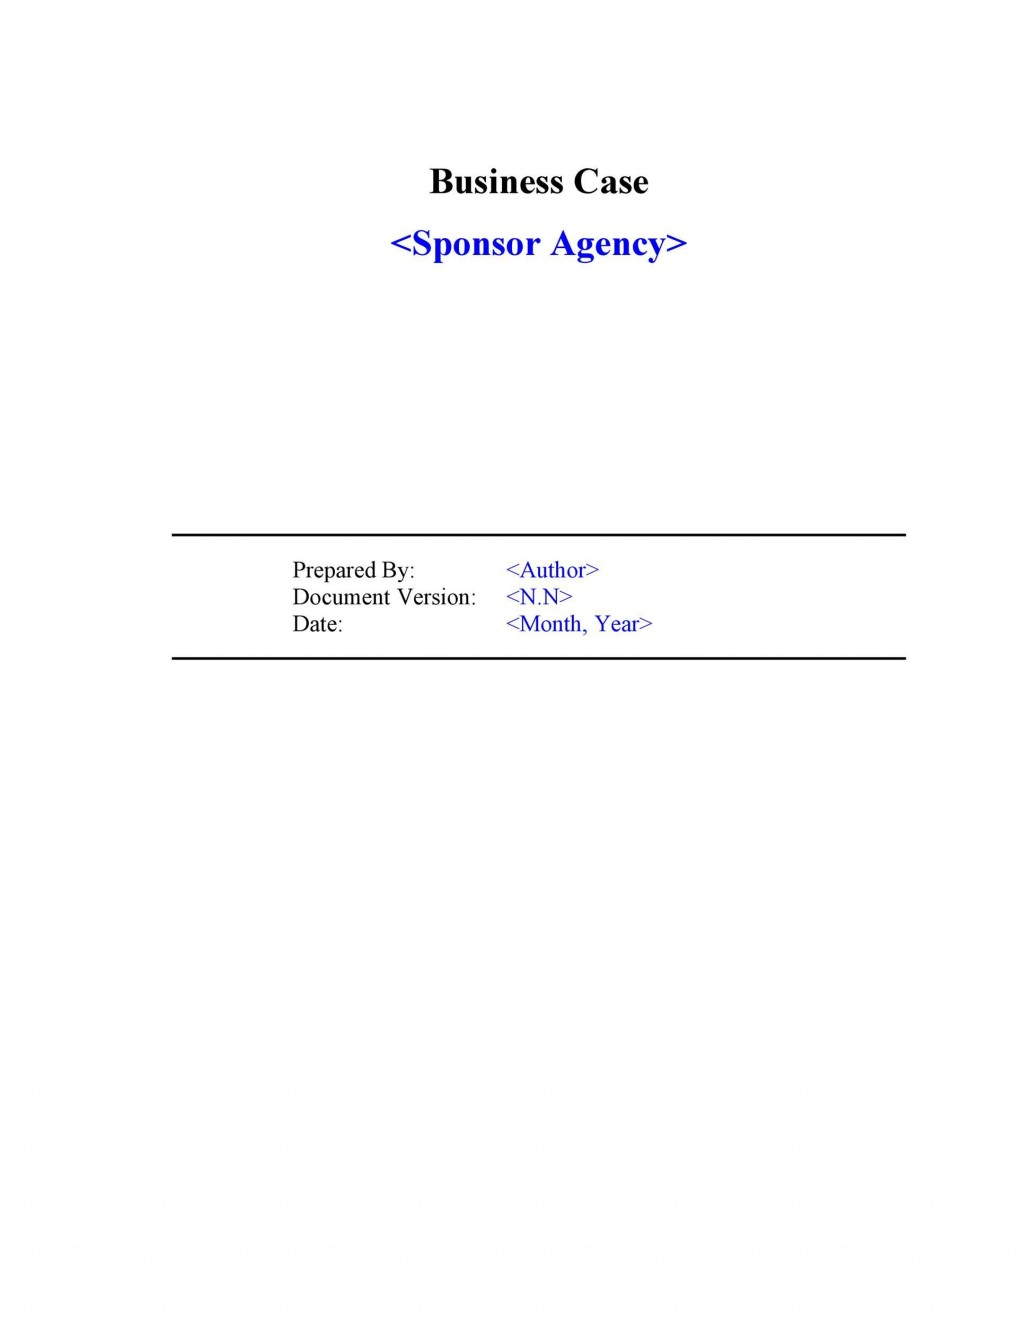 002 Awesome Busines Case Template Word Example  Download Document ProjectLarge